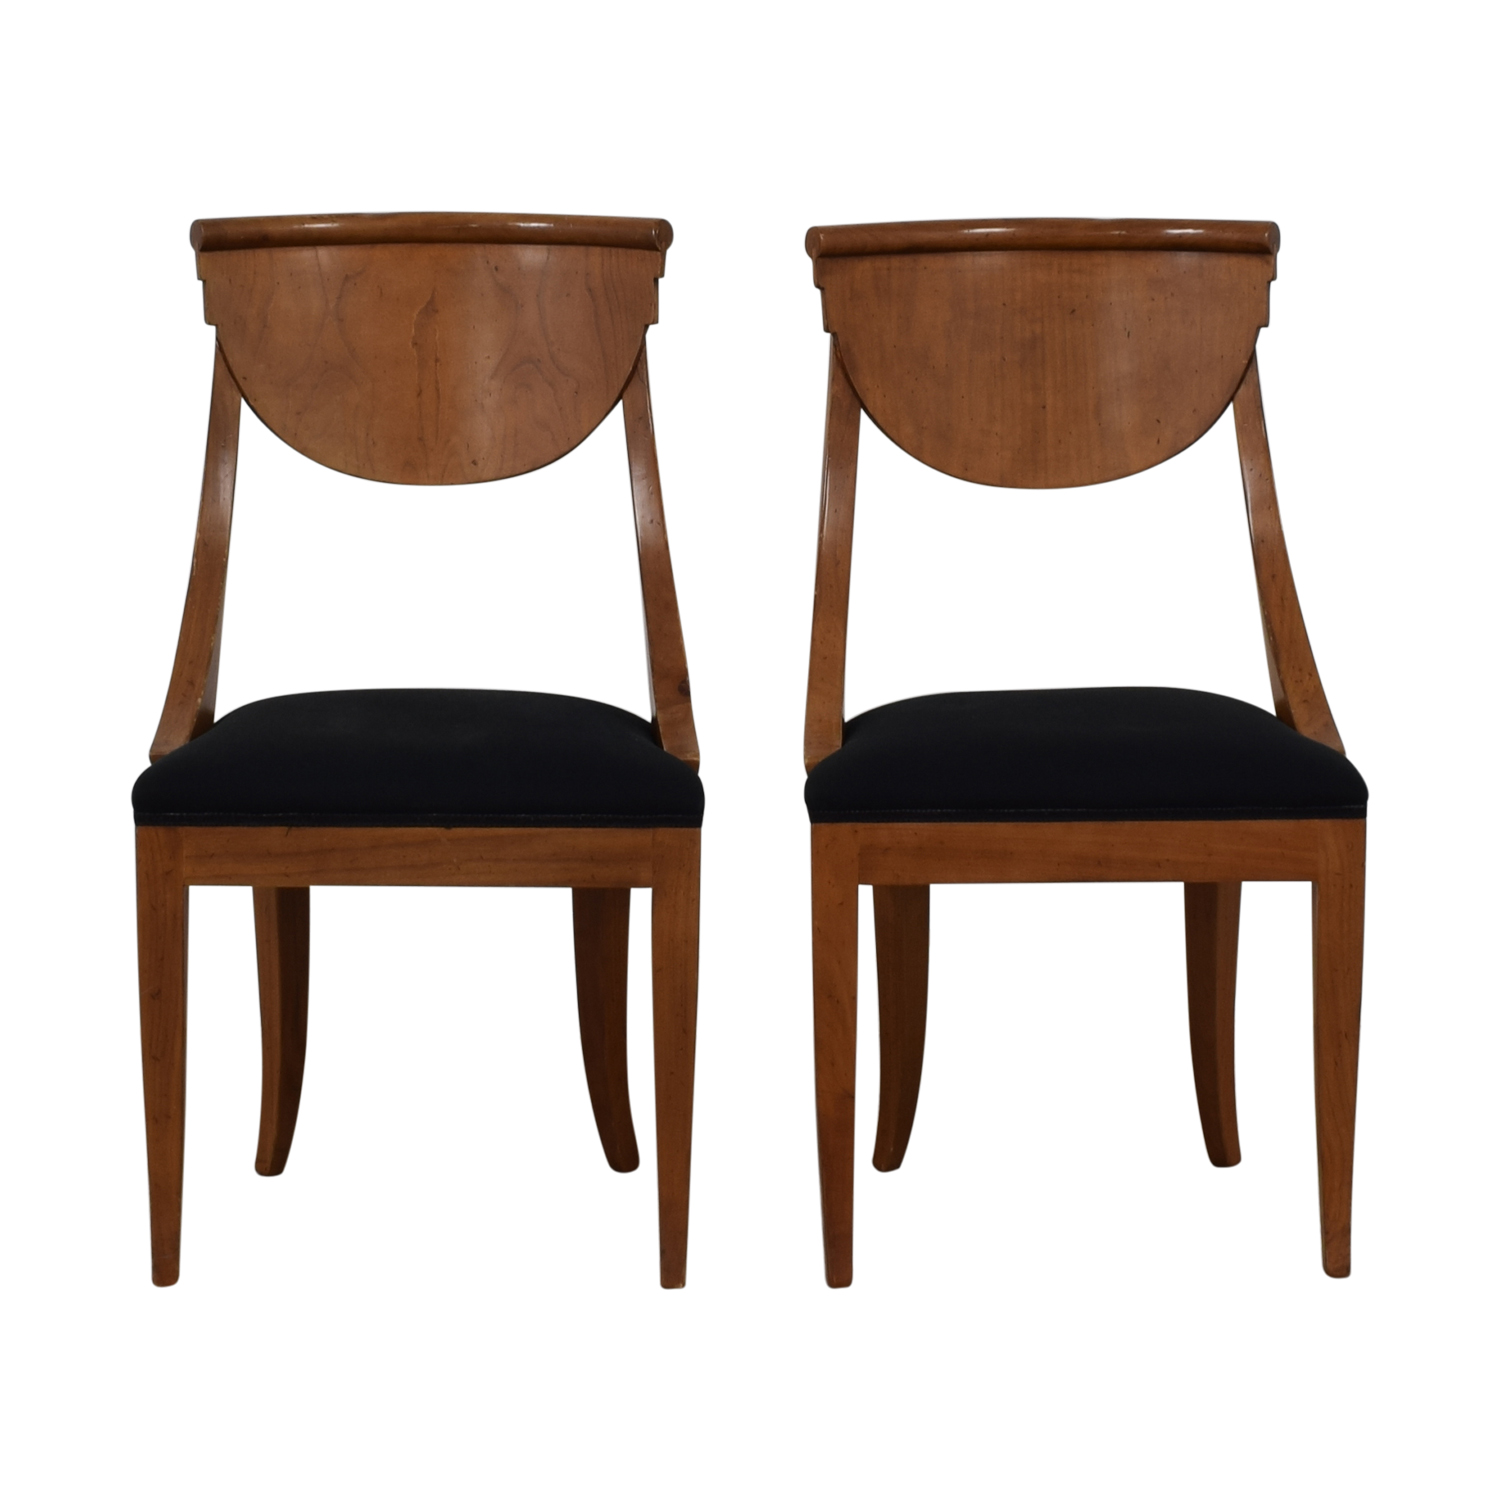 Blue Dining Chairs 75 Off Bloomingdale S Bloomingdale S Blue Dining Chairs Chairs